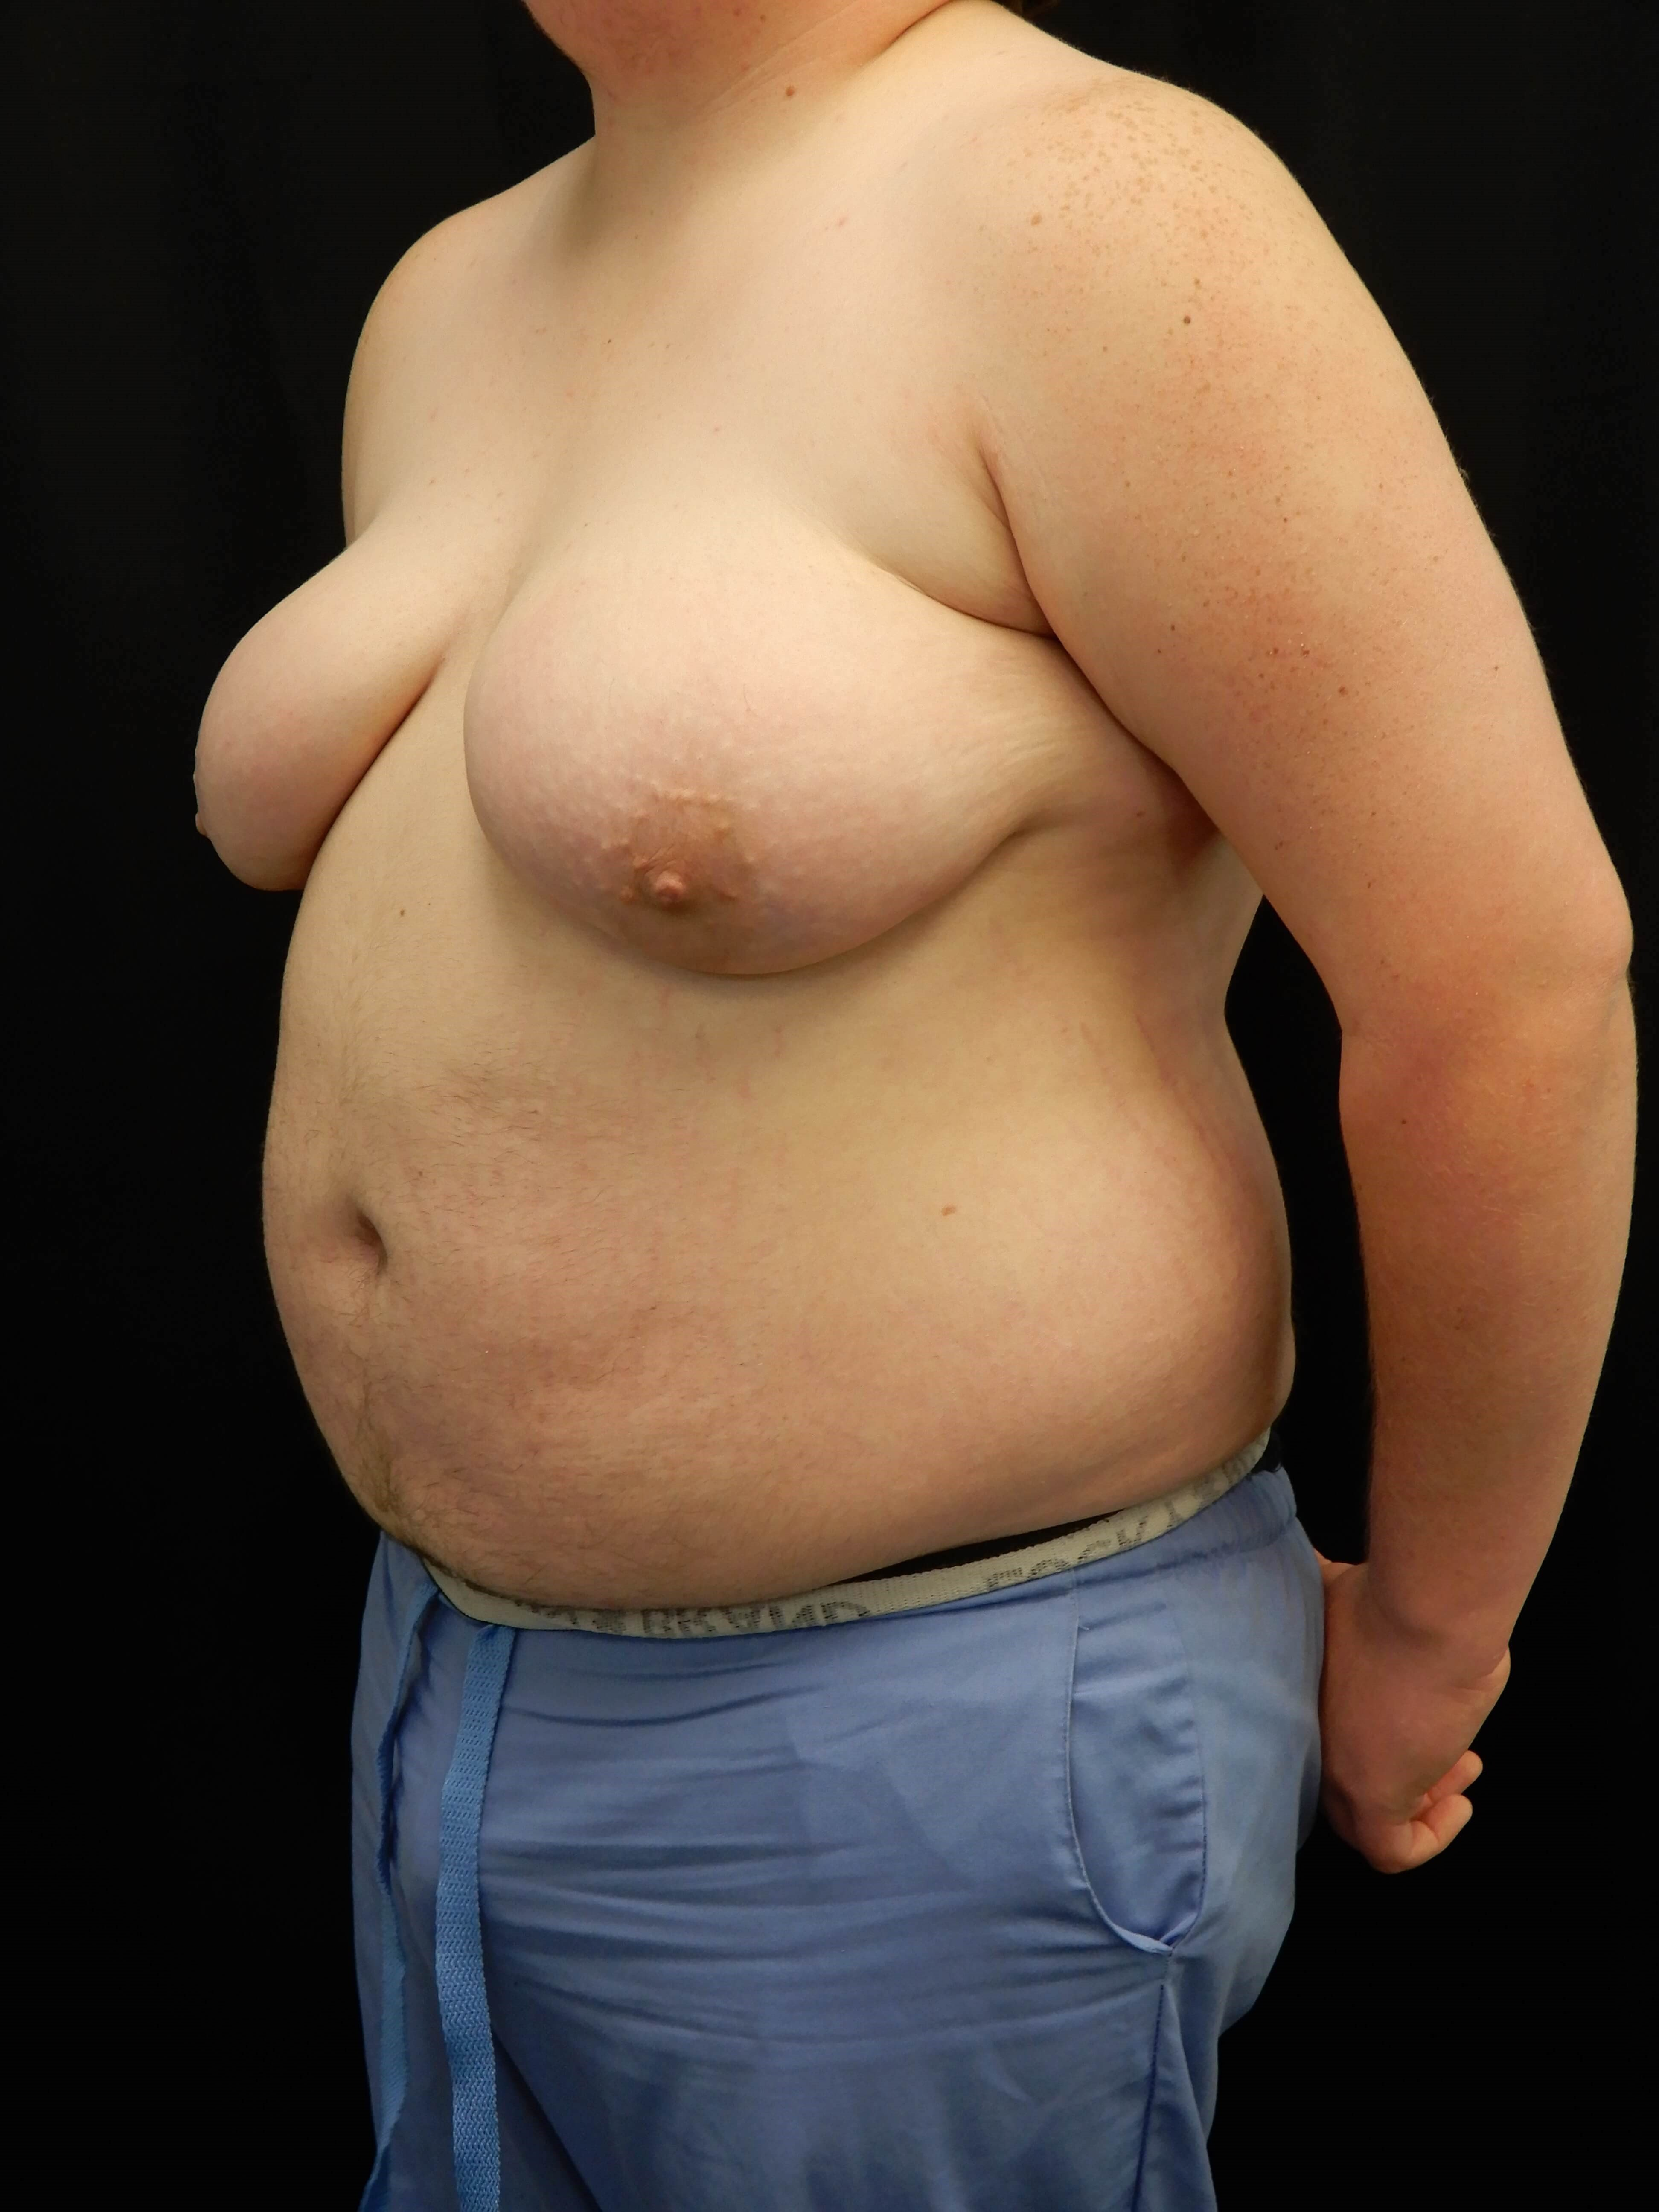 FTM Chest Reconstruction Before